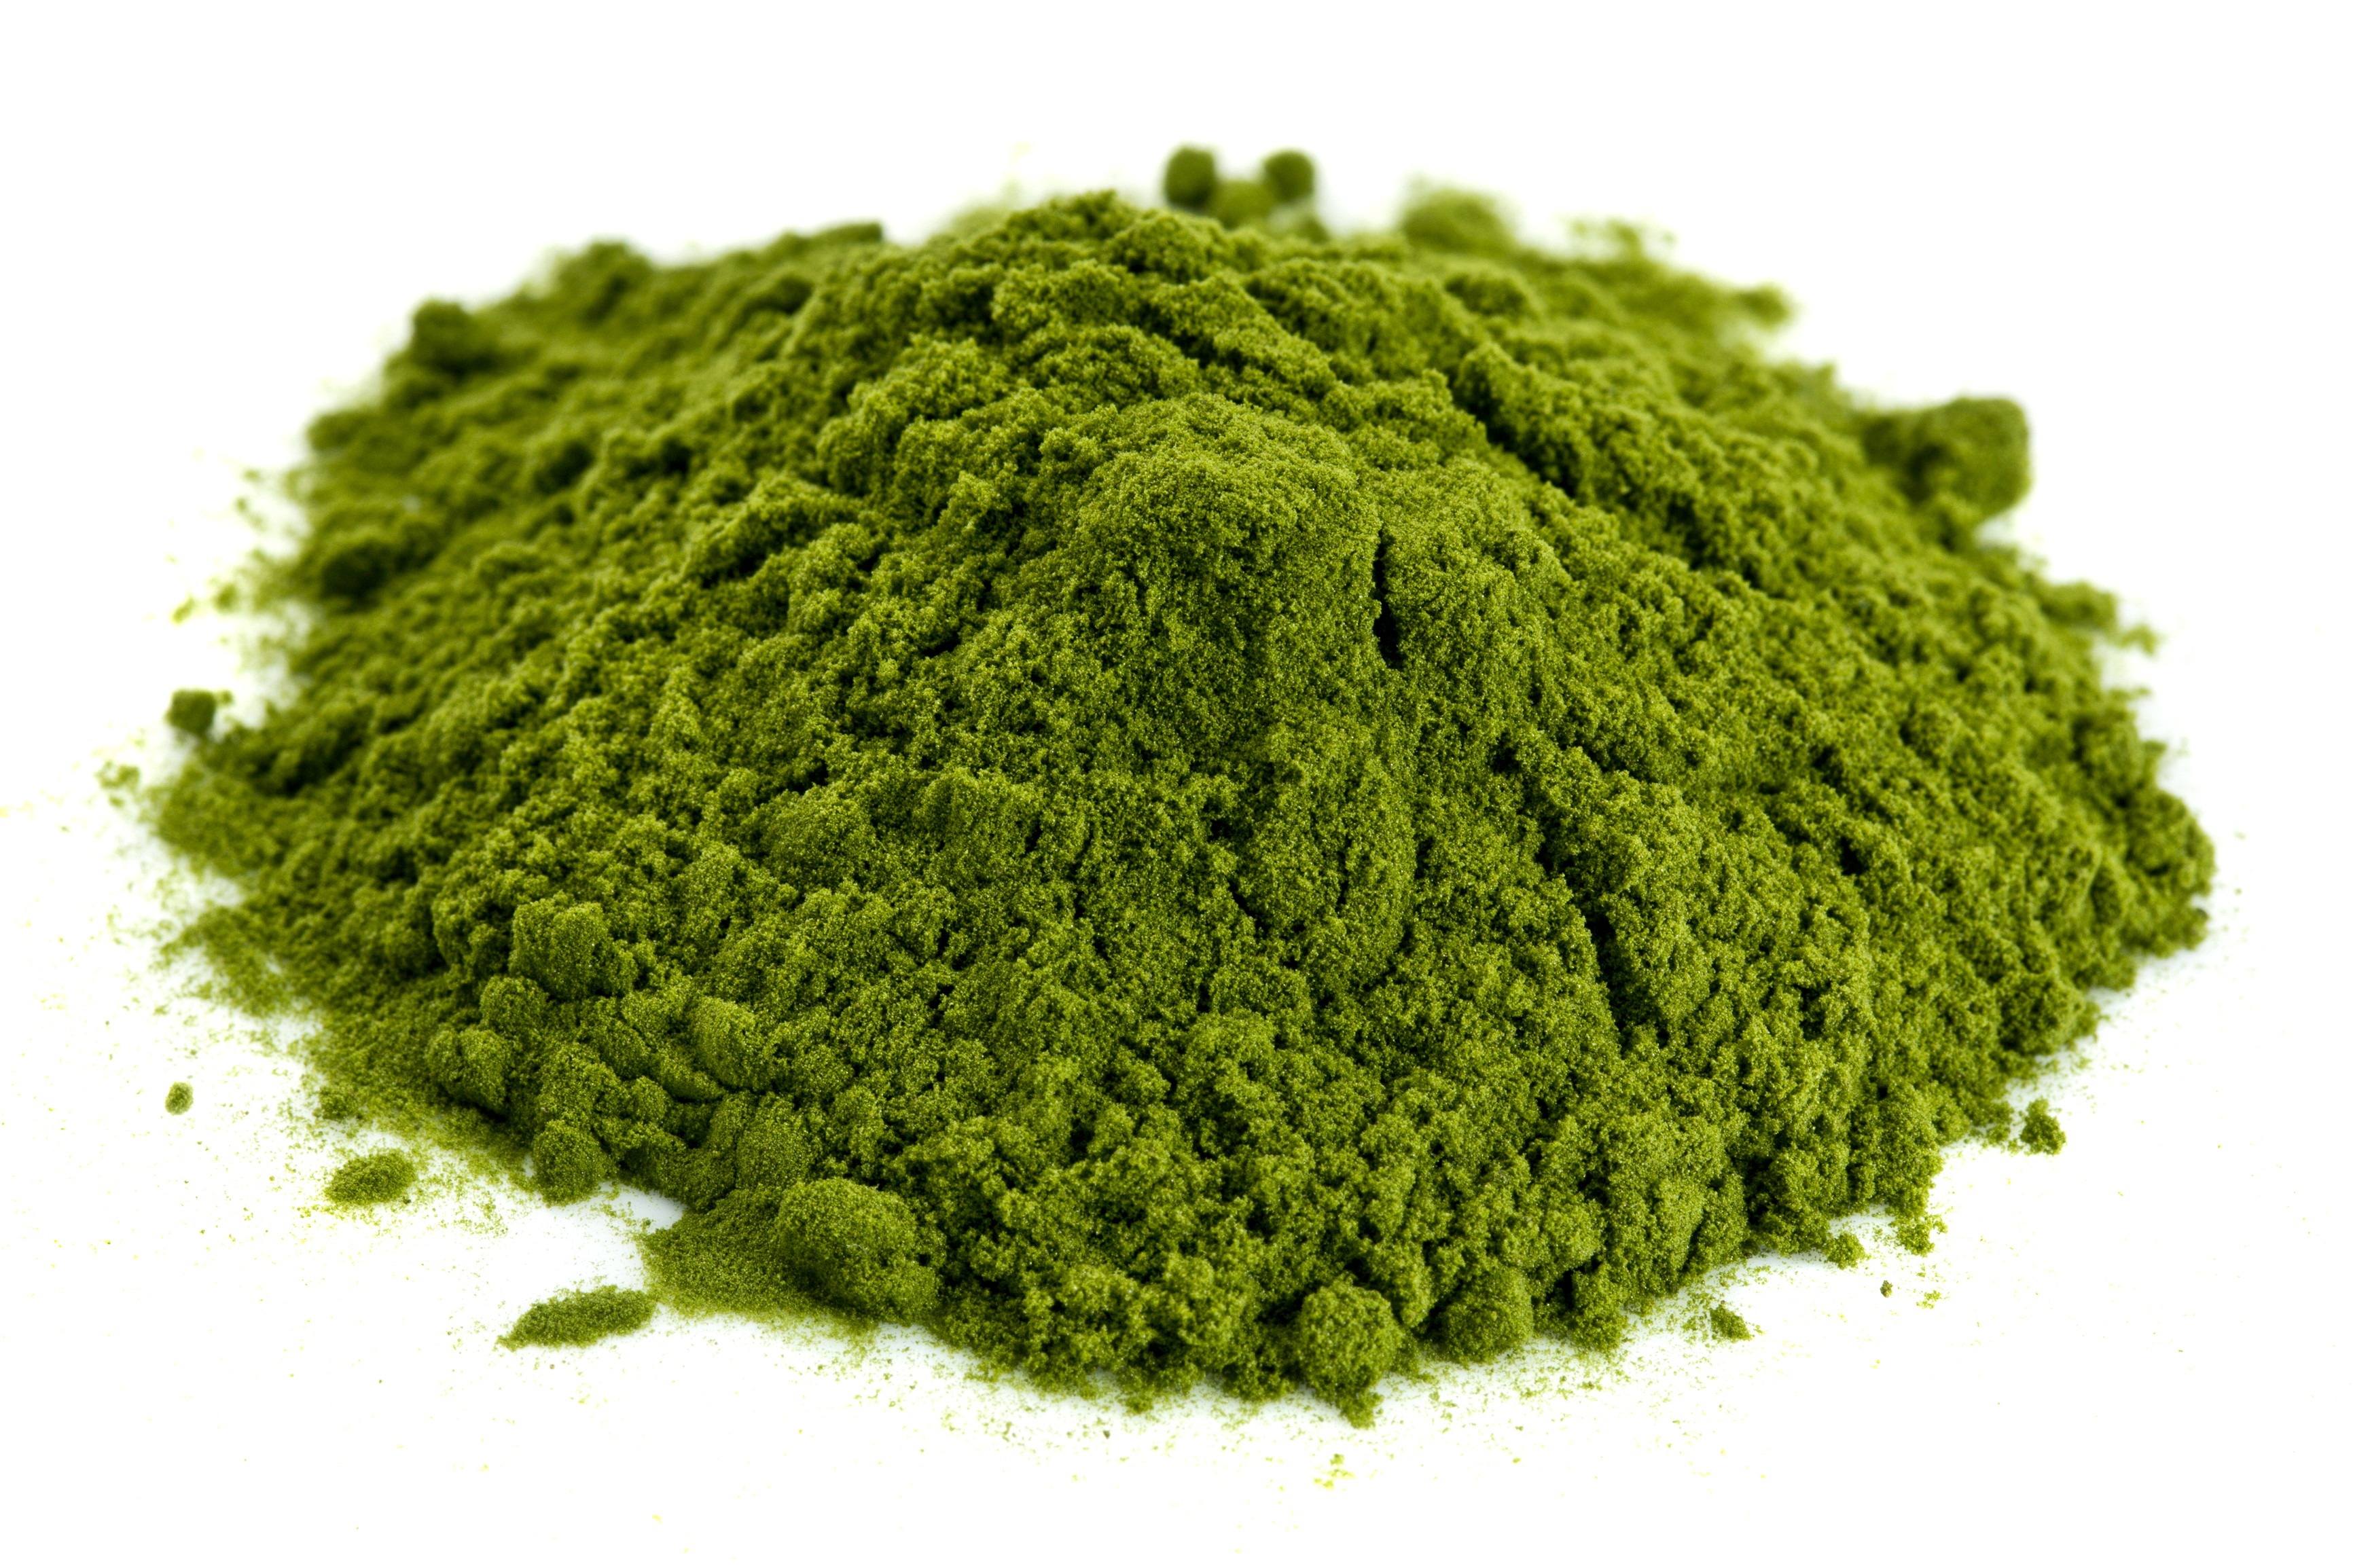 Spirulina - superfood